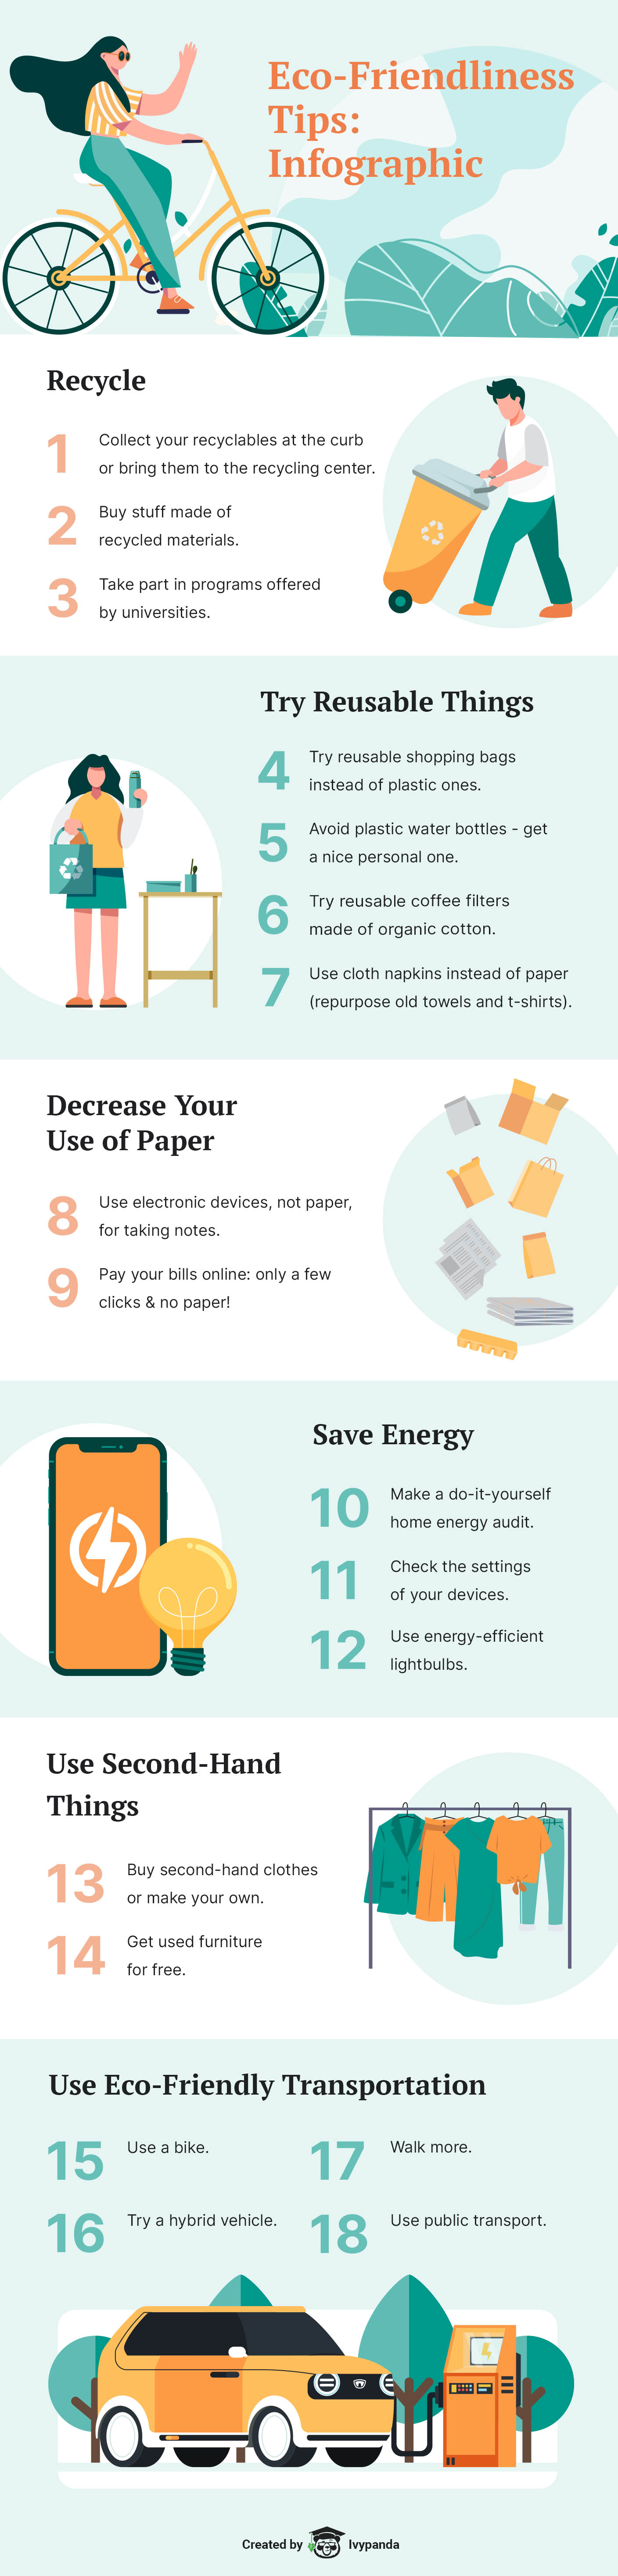 The infographic contains 18 easy tips on becoming more sustainable & eco-friendly.